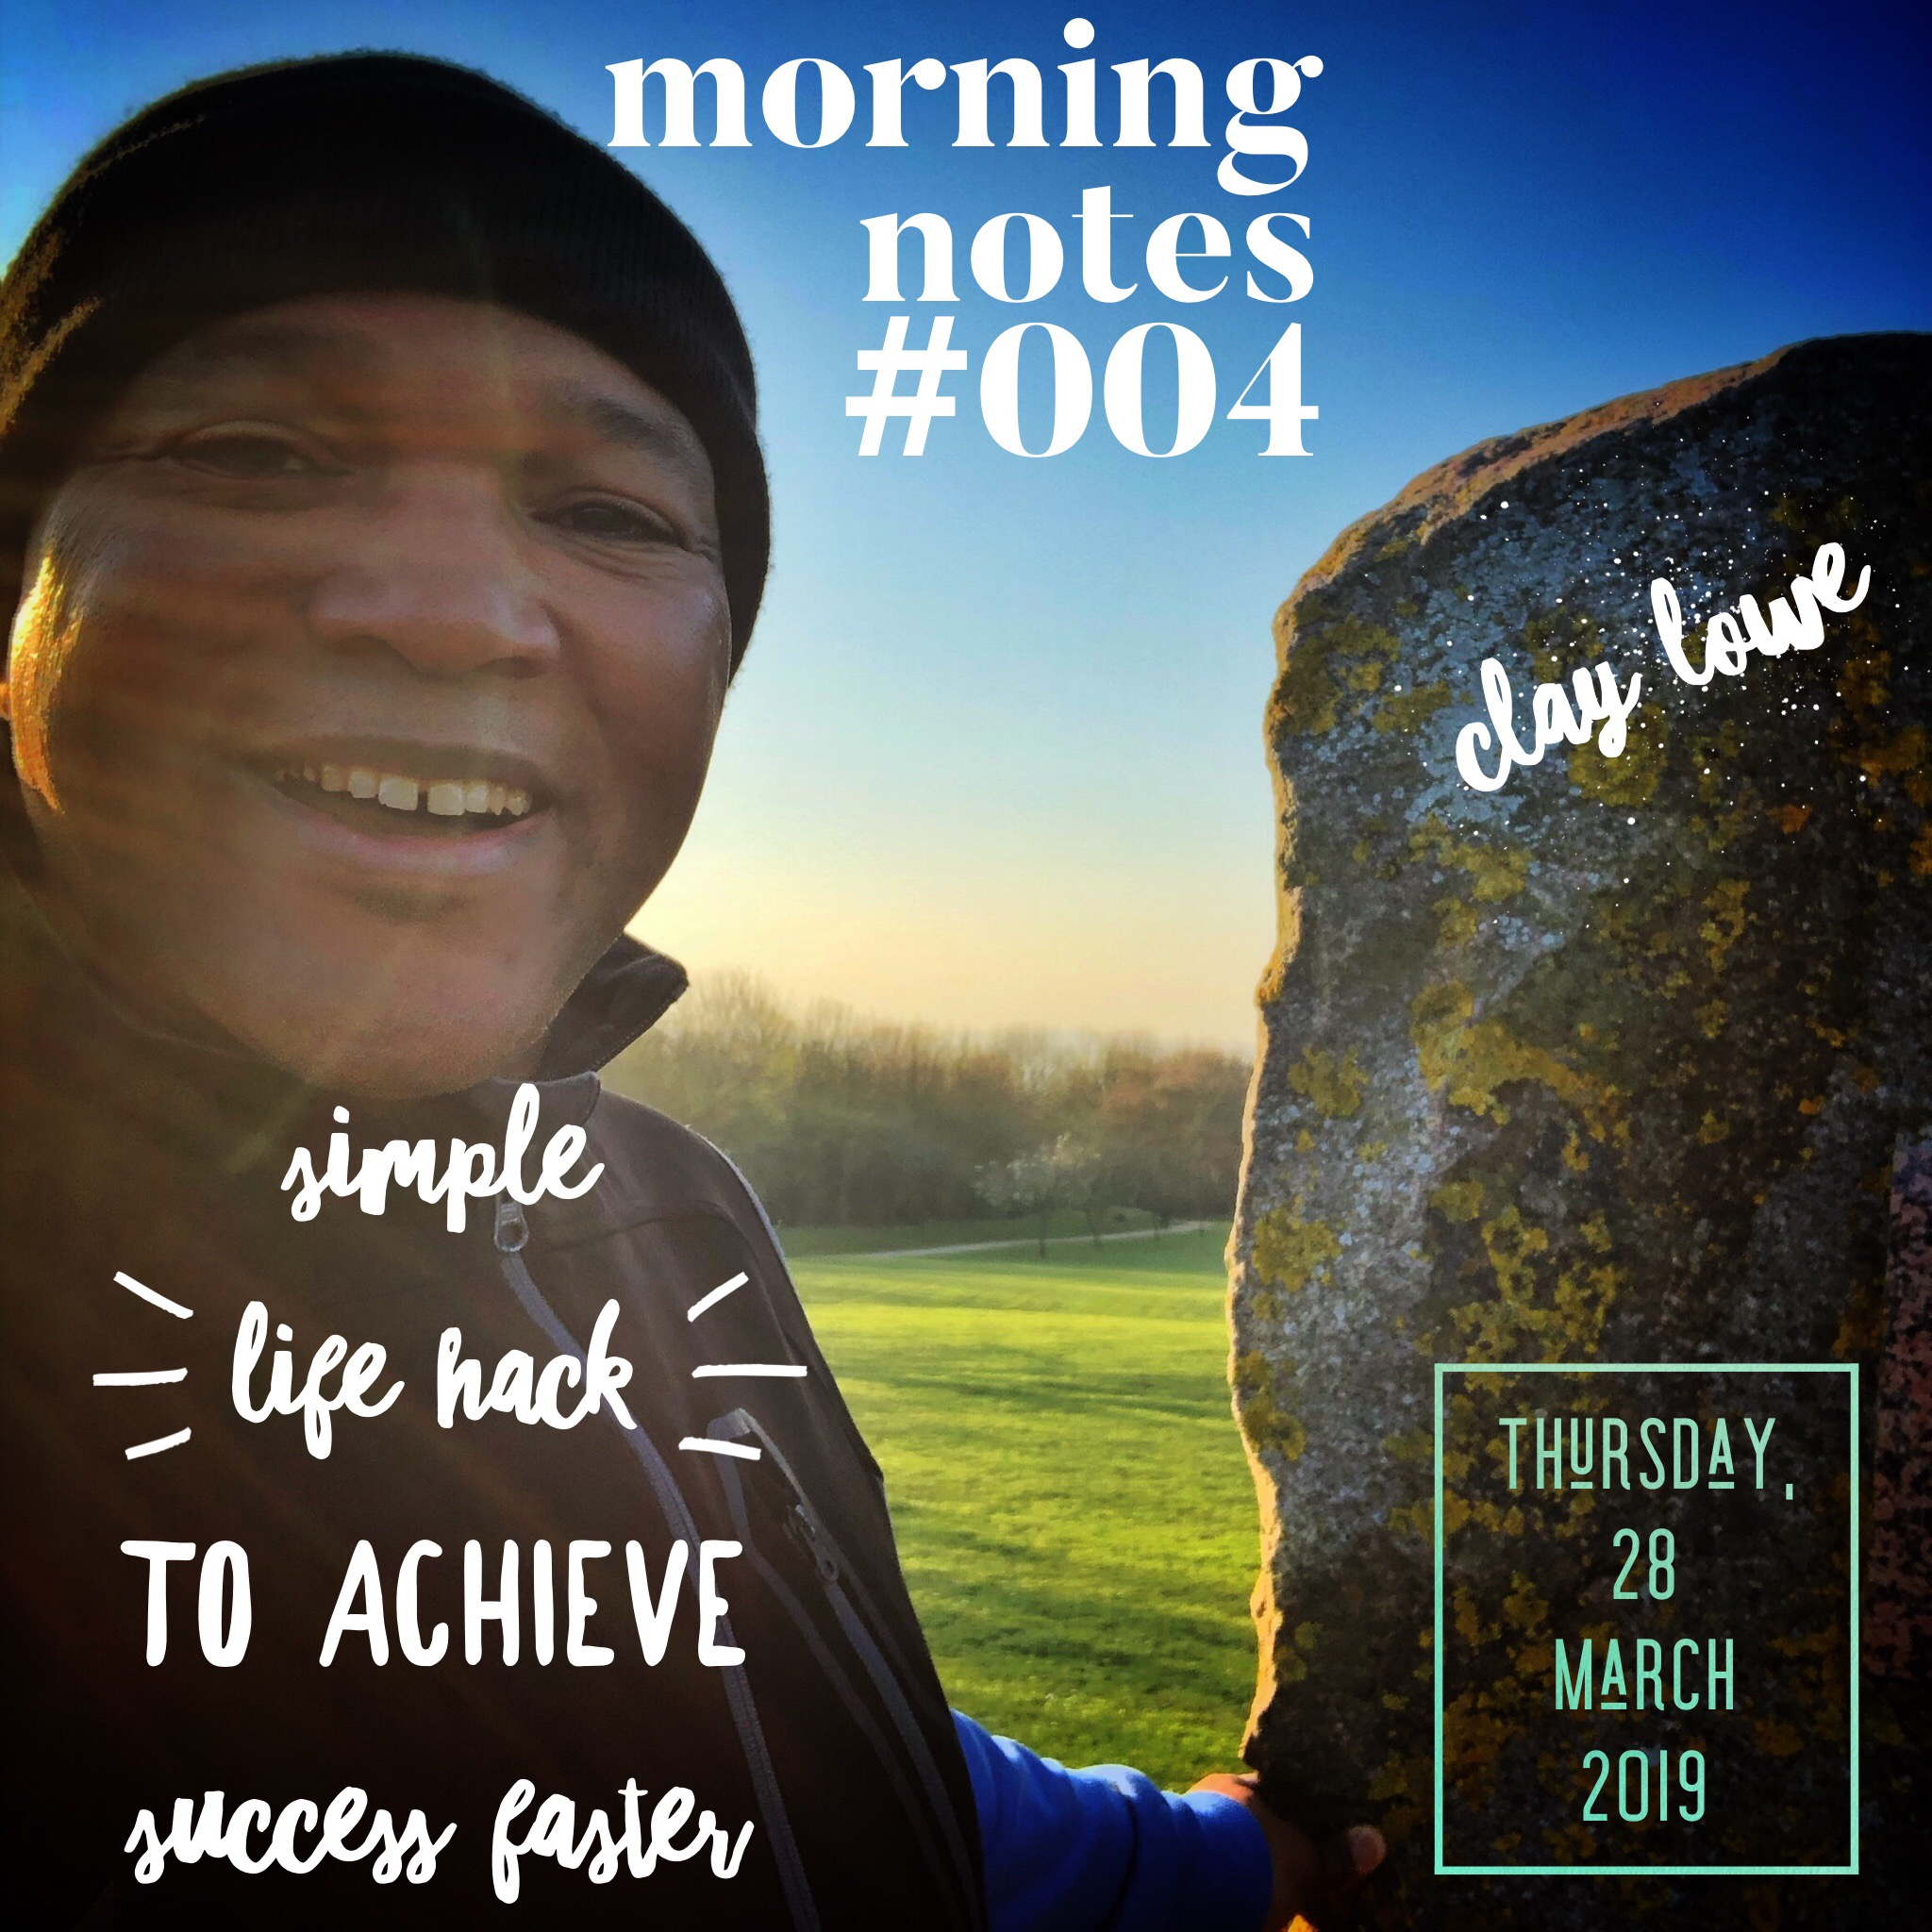 Simple Lifehack to Achieve Success Faster |Morning Notes 004